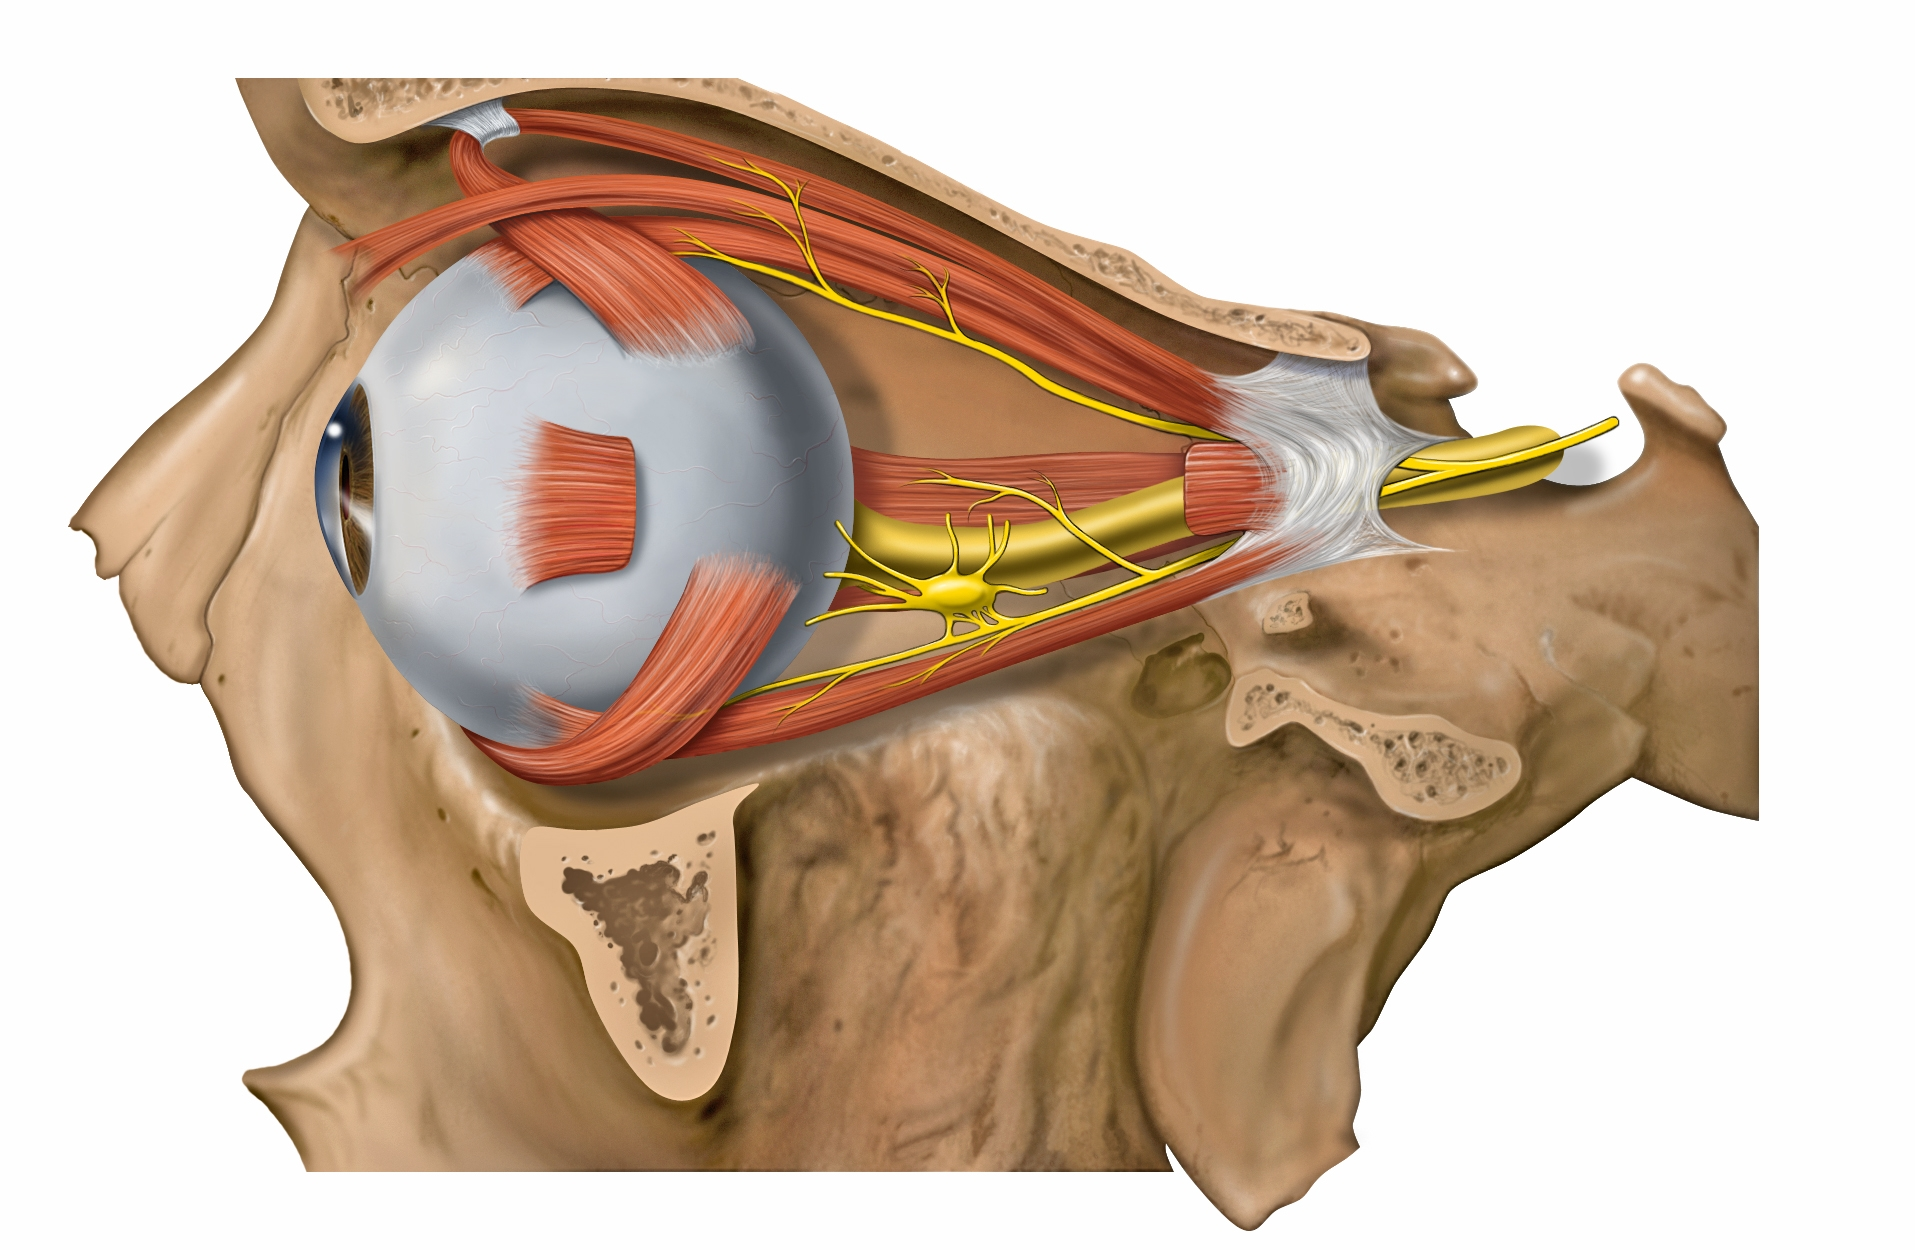 The ciliary ganglion lies temporal to the ophthalmic artery, inbetween the lateral rectus and optic nerve. It is approximately 1.5-2.0 cm (15-20 mm) posterior to the globe and 1.0 cm (10 mm) anterior to the Annulus of Zinn and the superior orbital fissure.  Image credit:  Wikipedia .